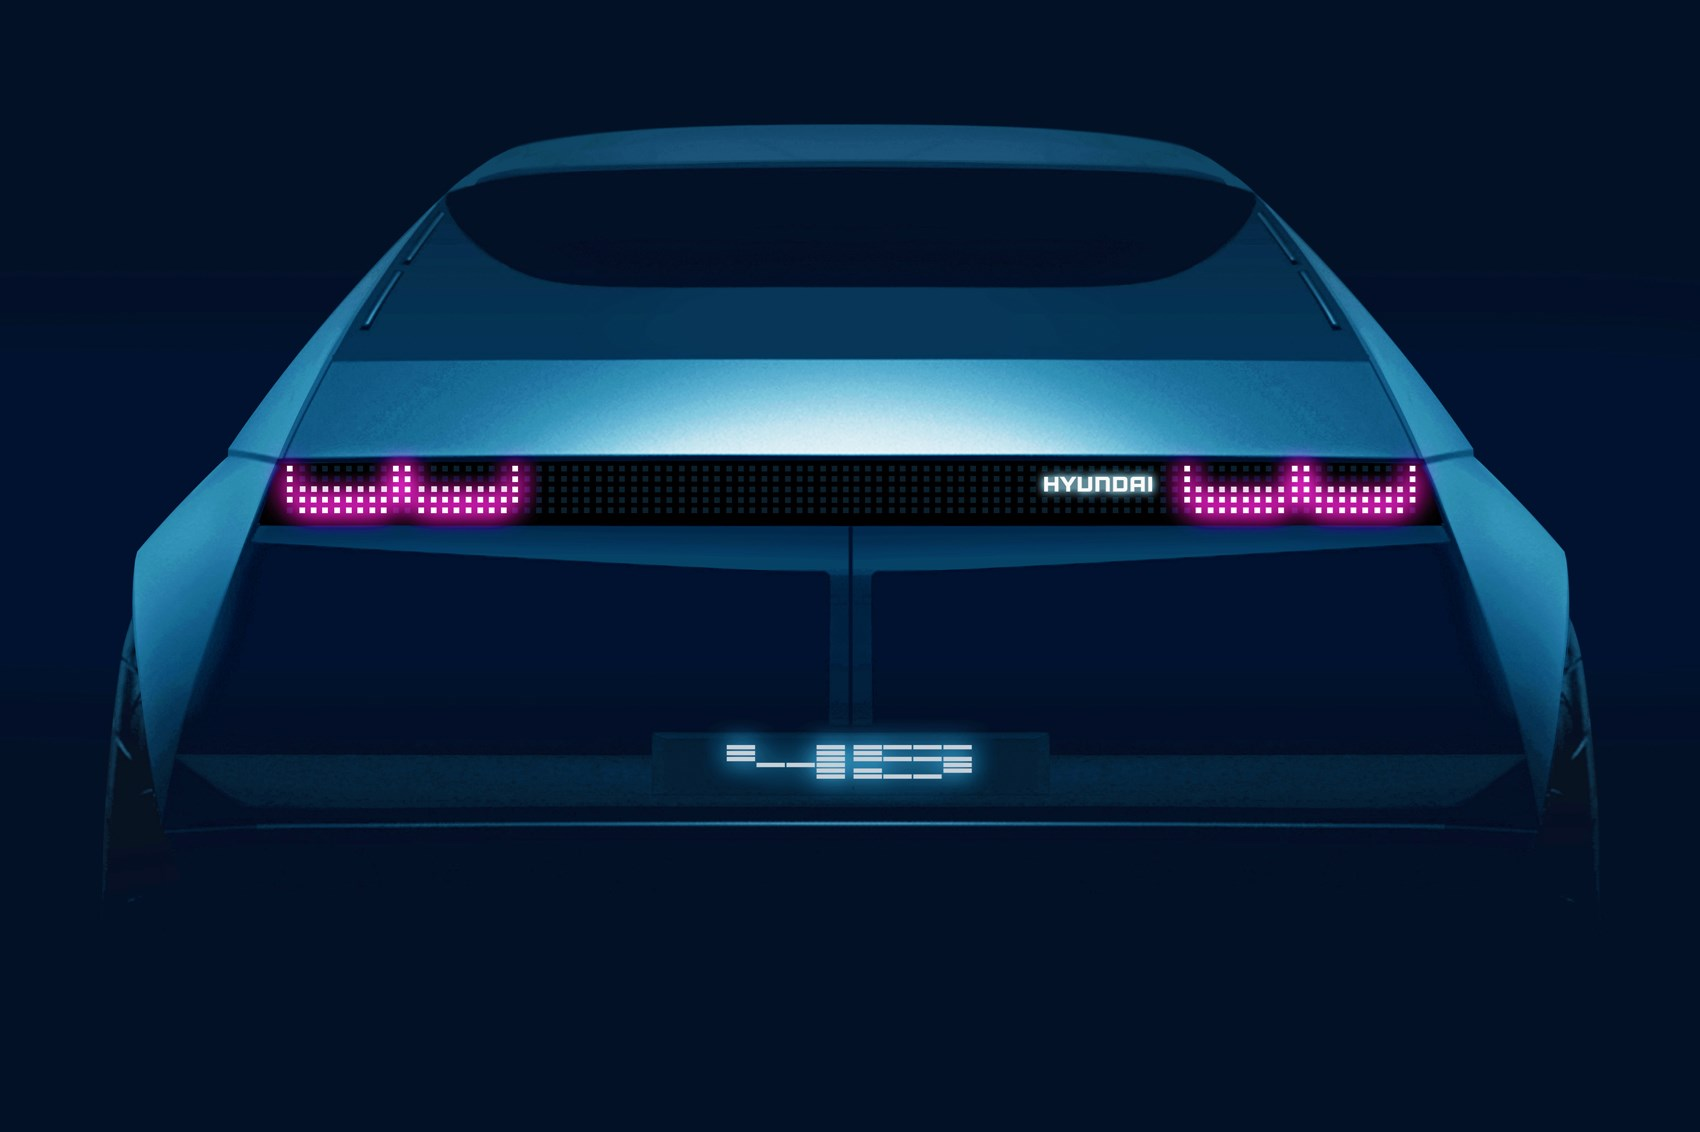 Hyundai 45 Concept has a graphic lightbar for taillights